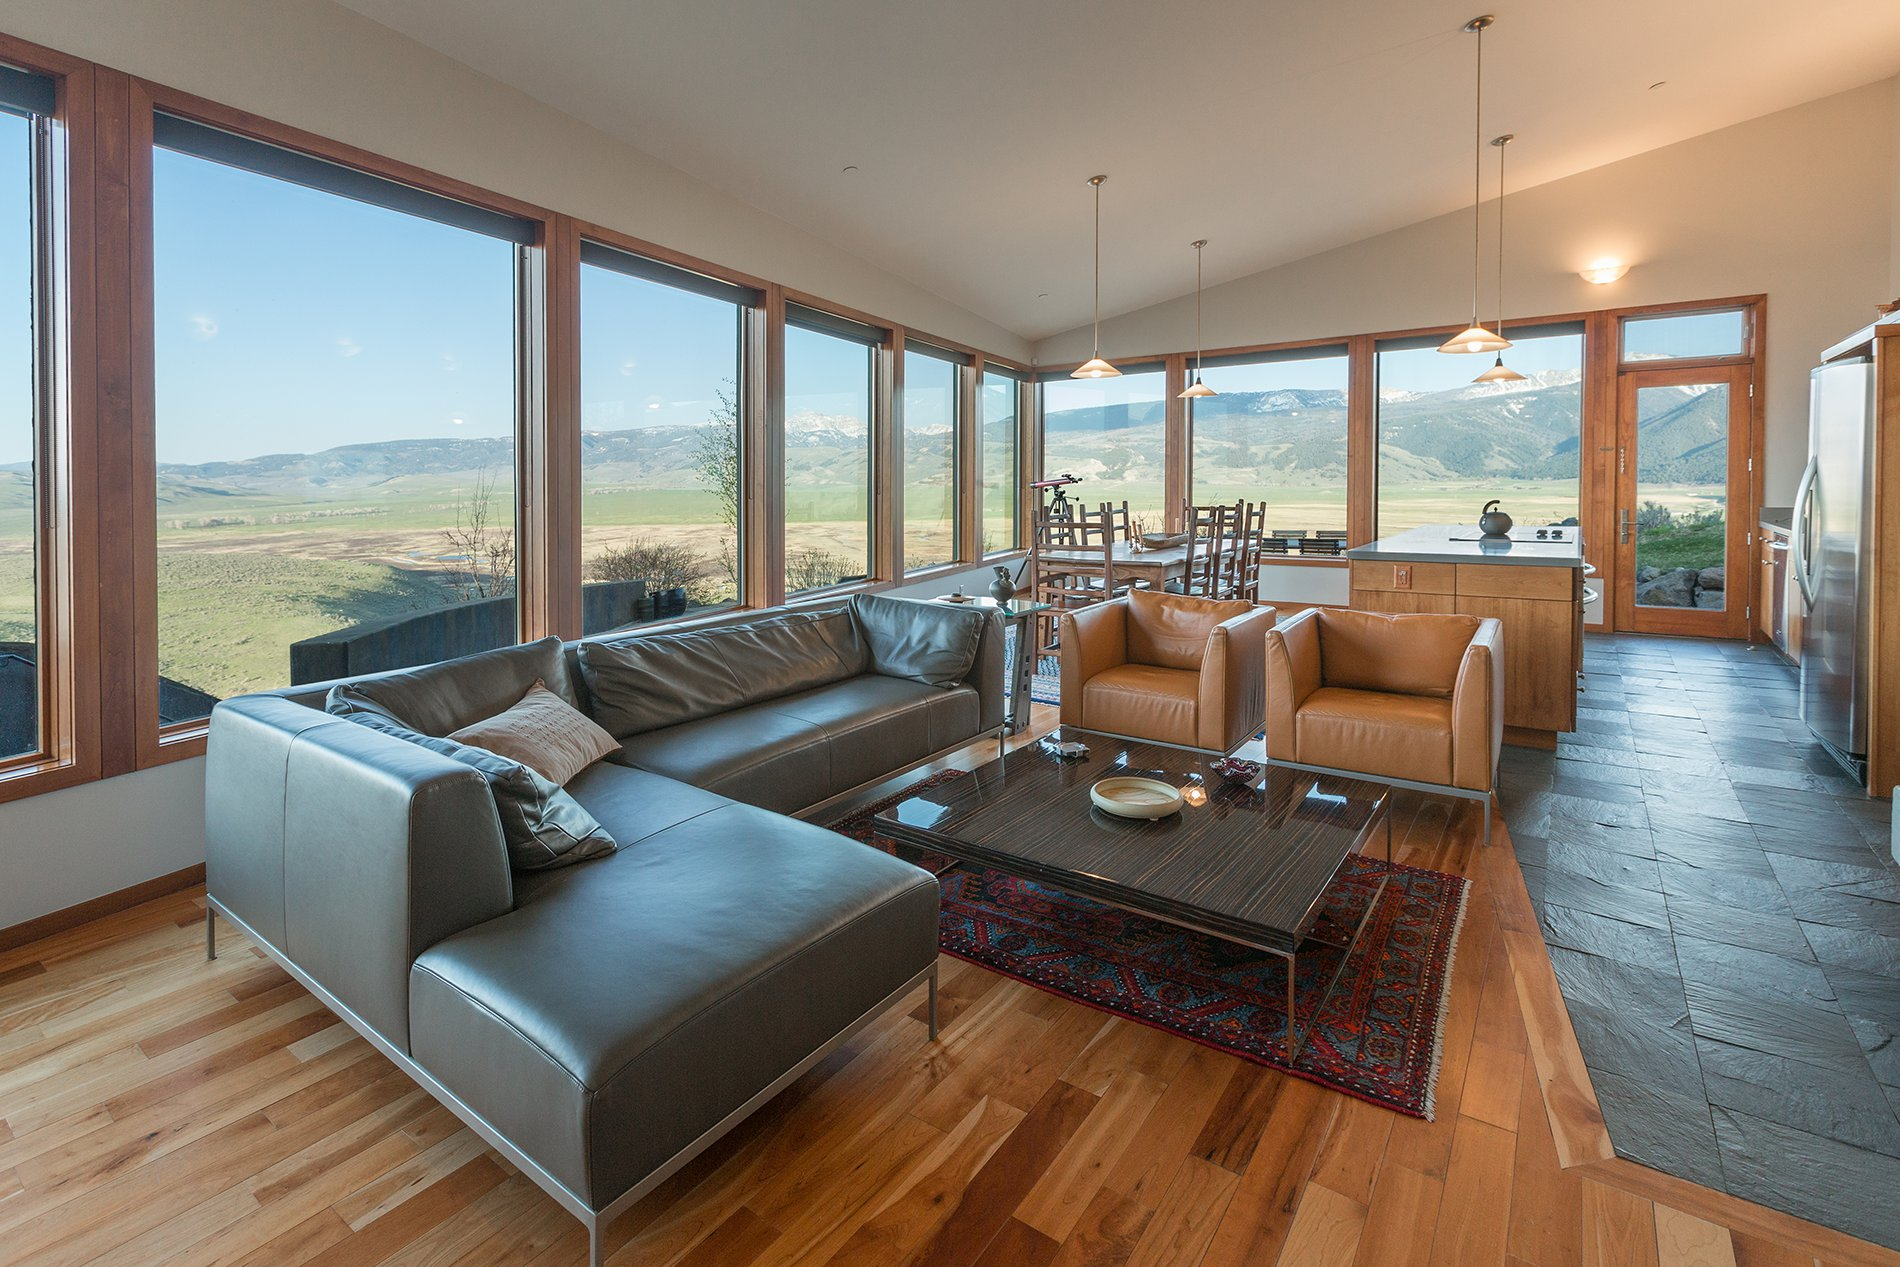 Modern home for sale in Jackson Hole Wyoming